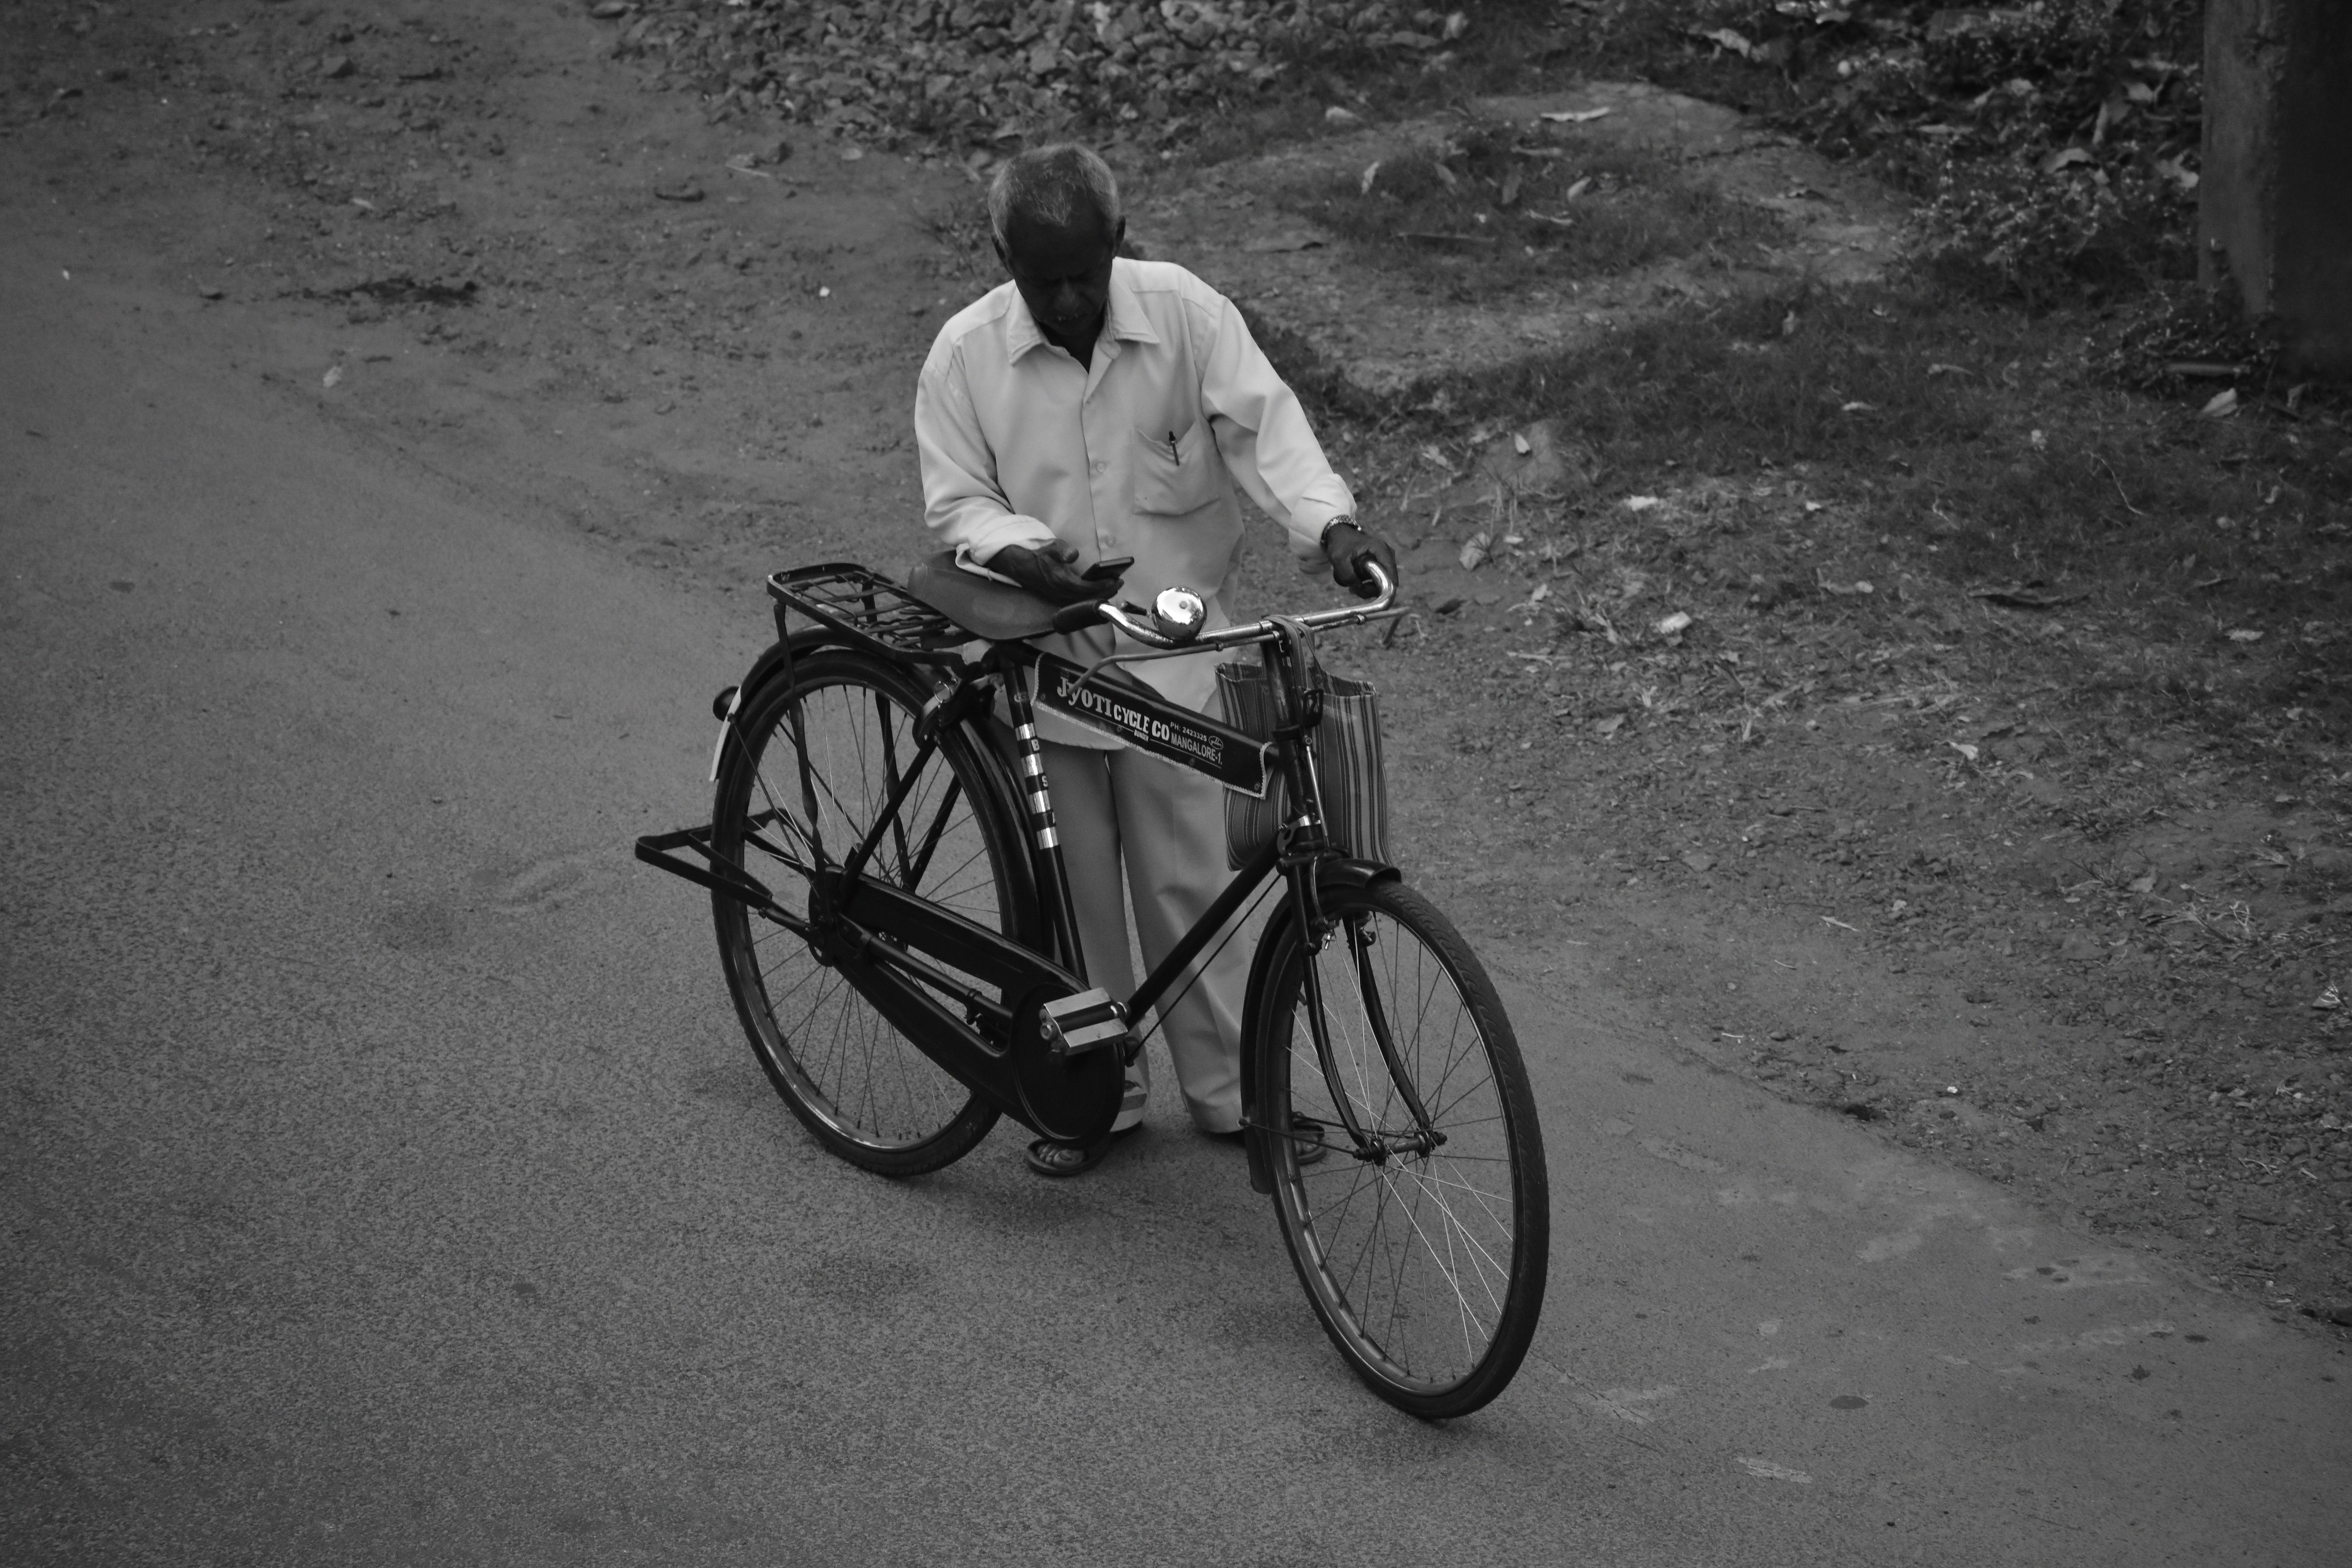 Man Beside Bicycle, Adult, Bicycle, Bike, Black and white, HQ Photo